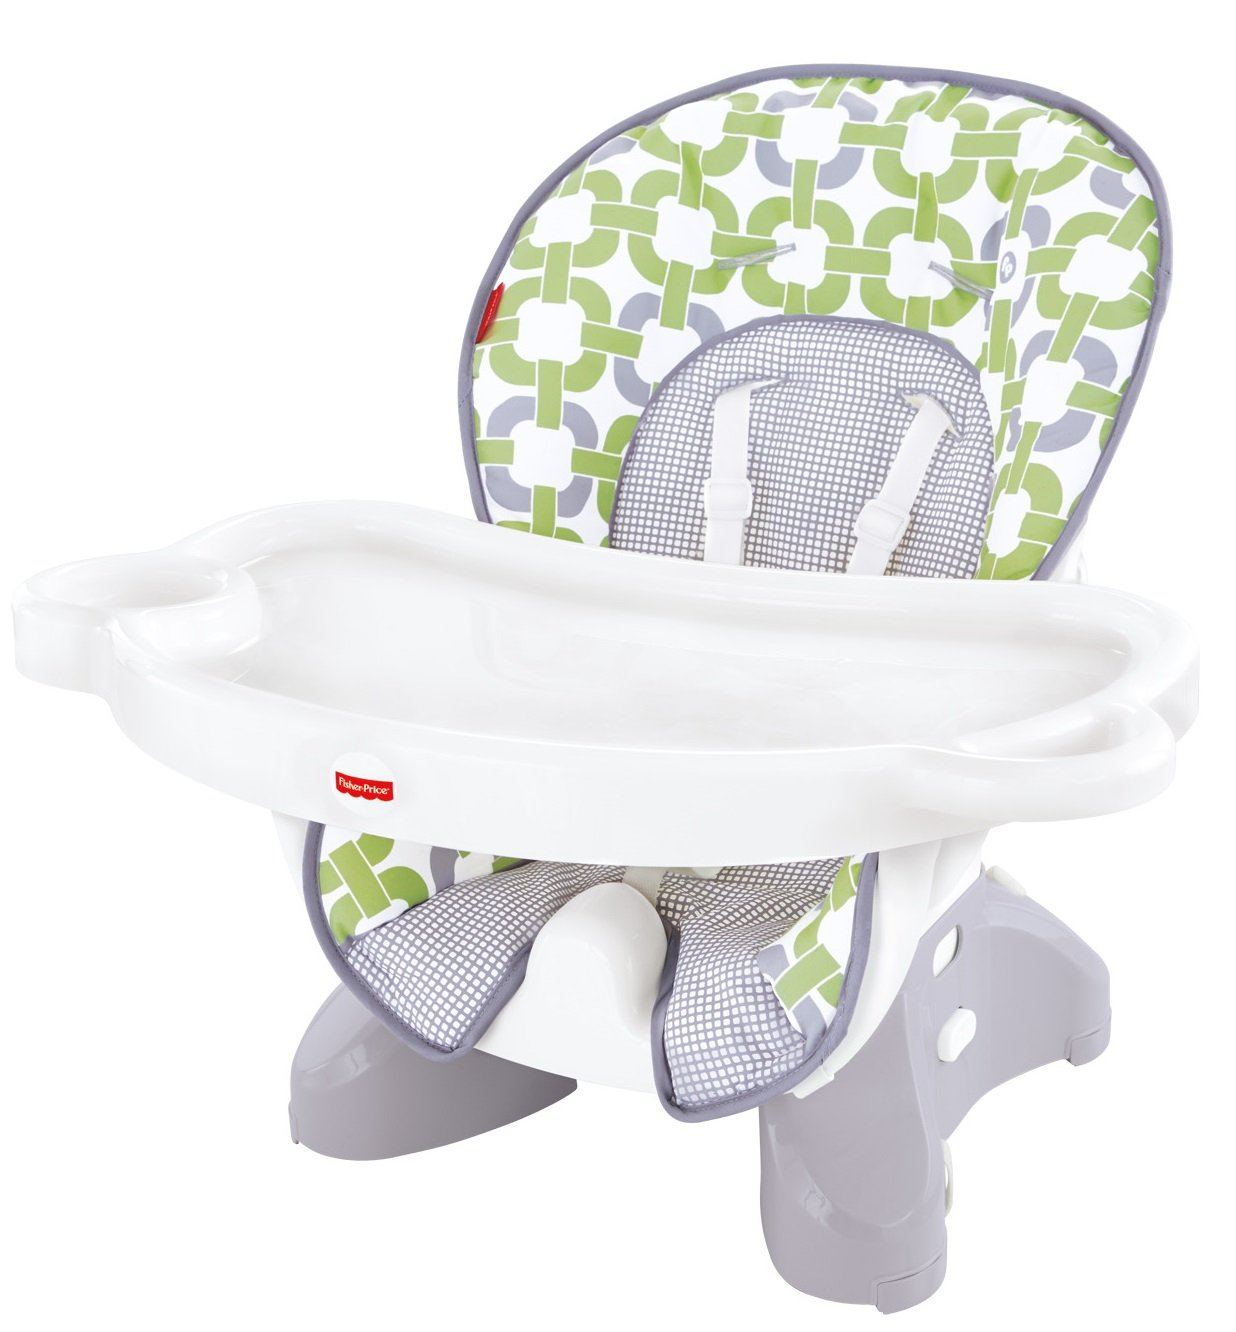 OpenBox Fisher Price Space Saver High Chair EBay